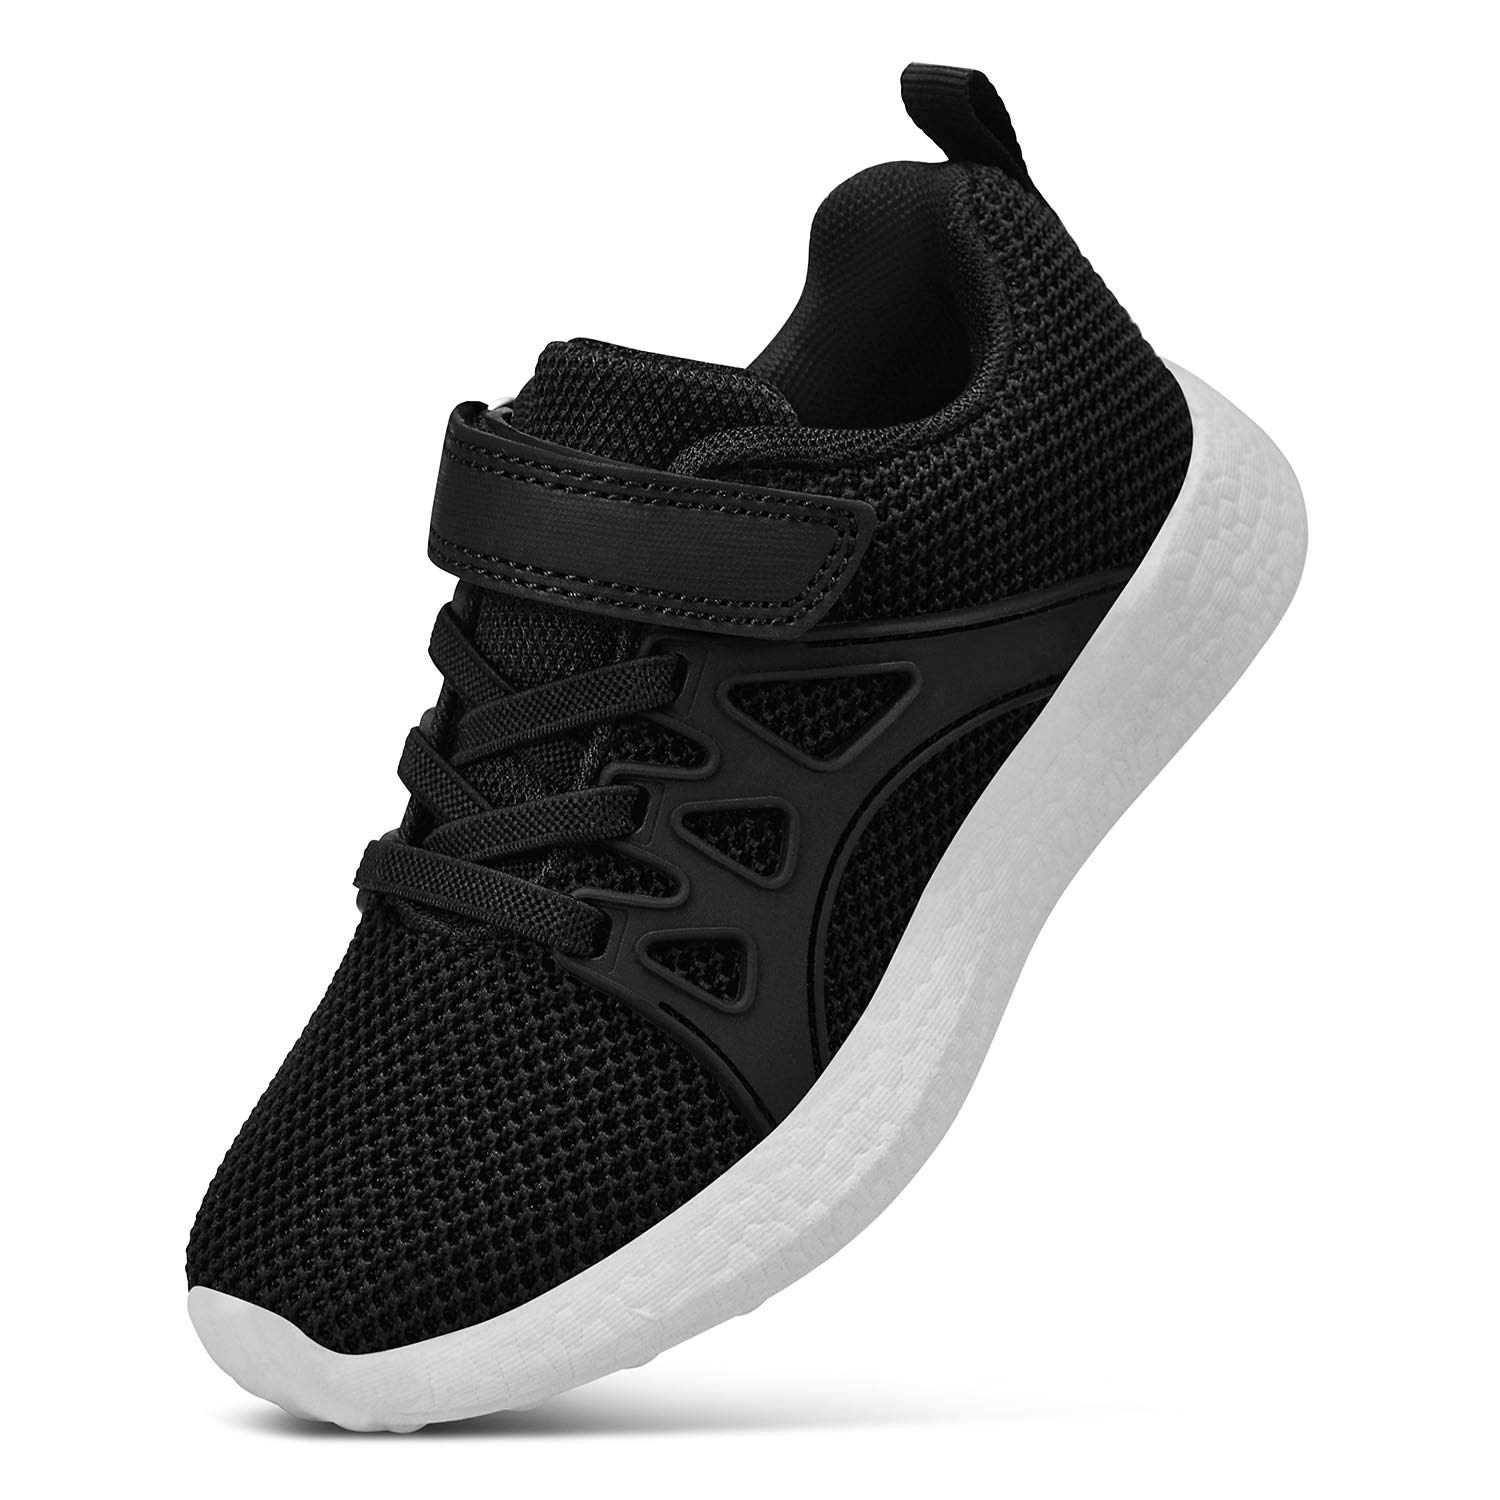 SouthBrothers Boys Shoes for Kids Lightweight Running Shoes Black White Size 1.5 M US Little Kid